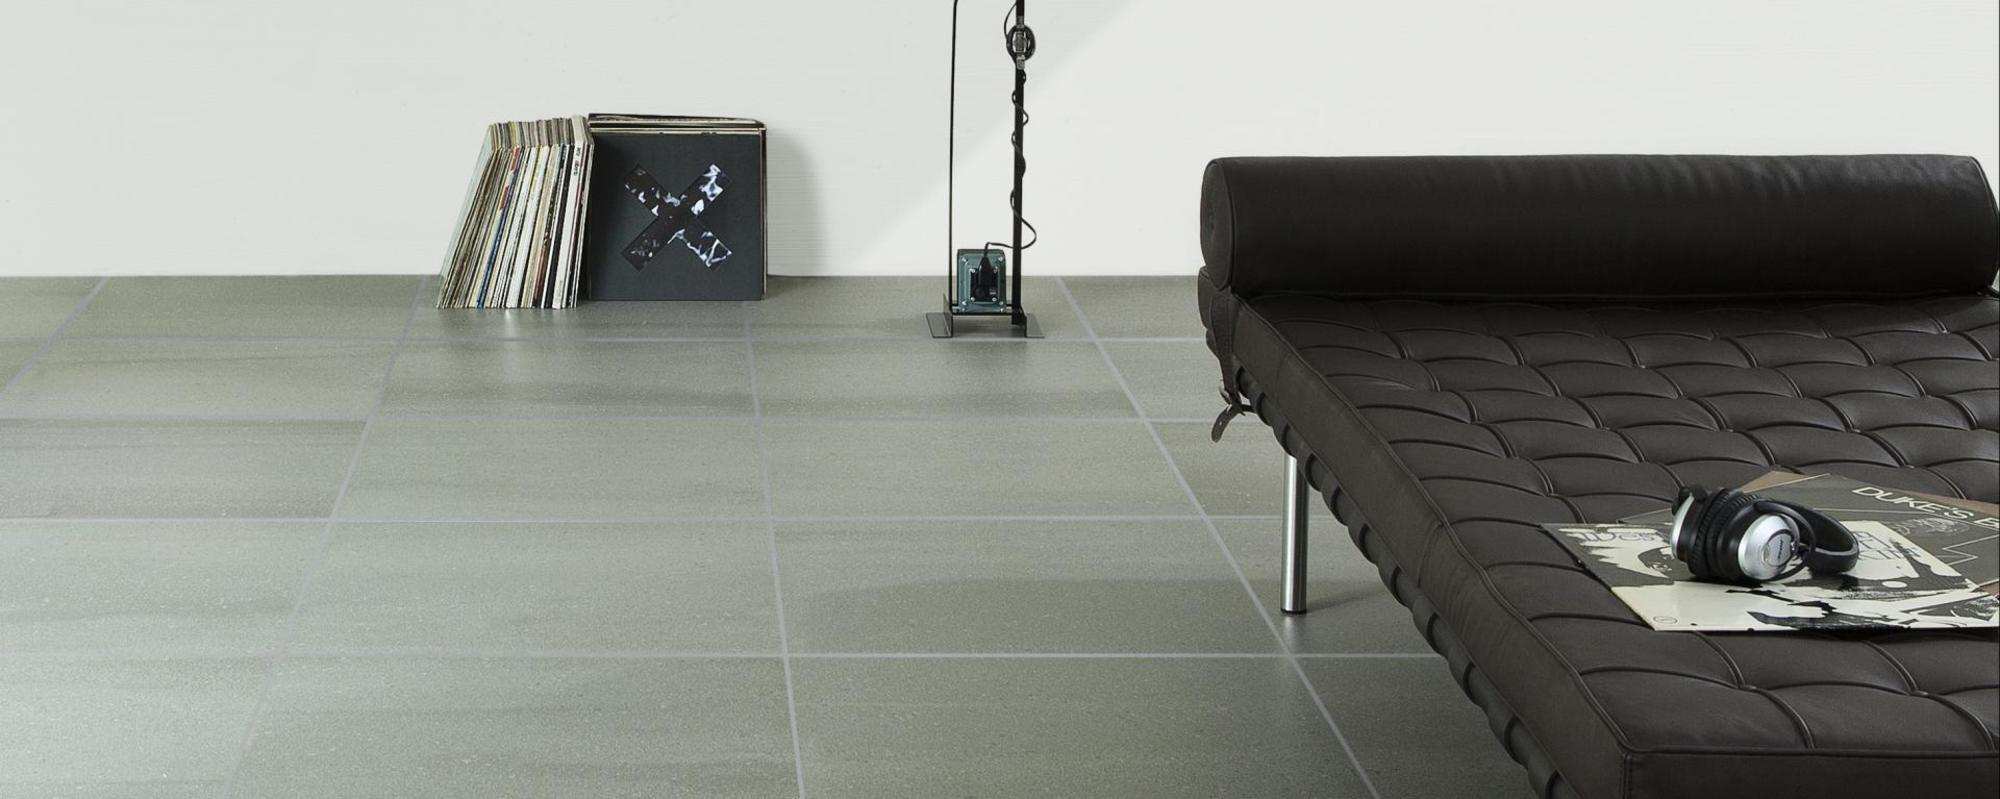 Royal MOSA tiles Solids jade grey